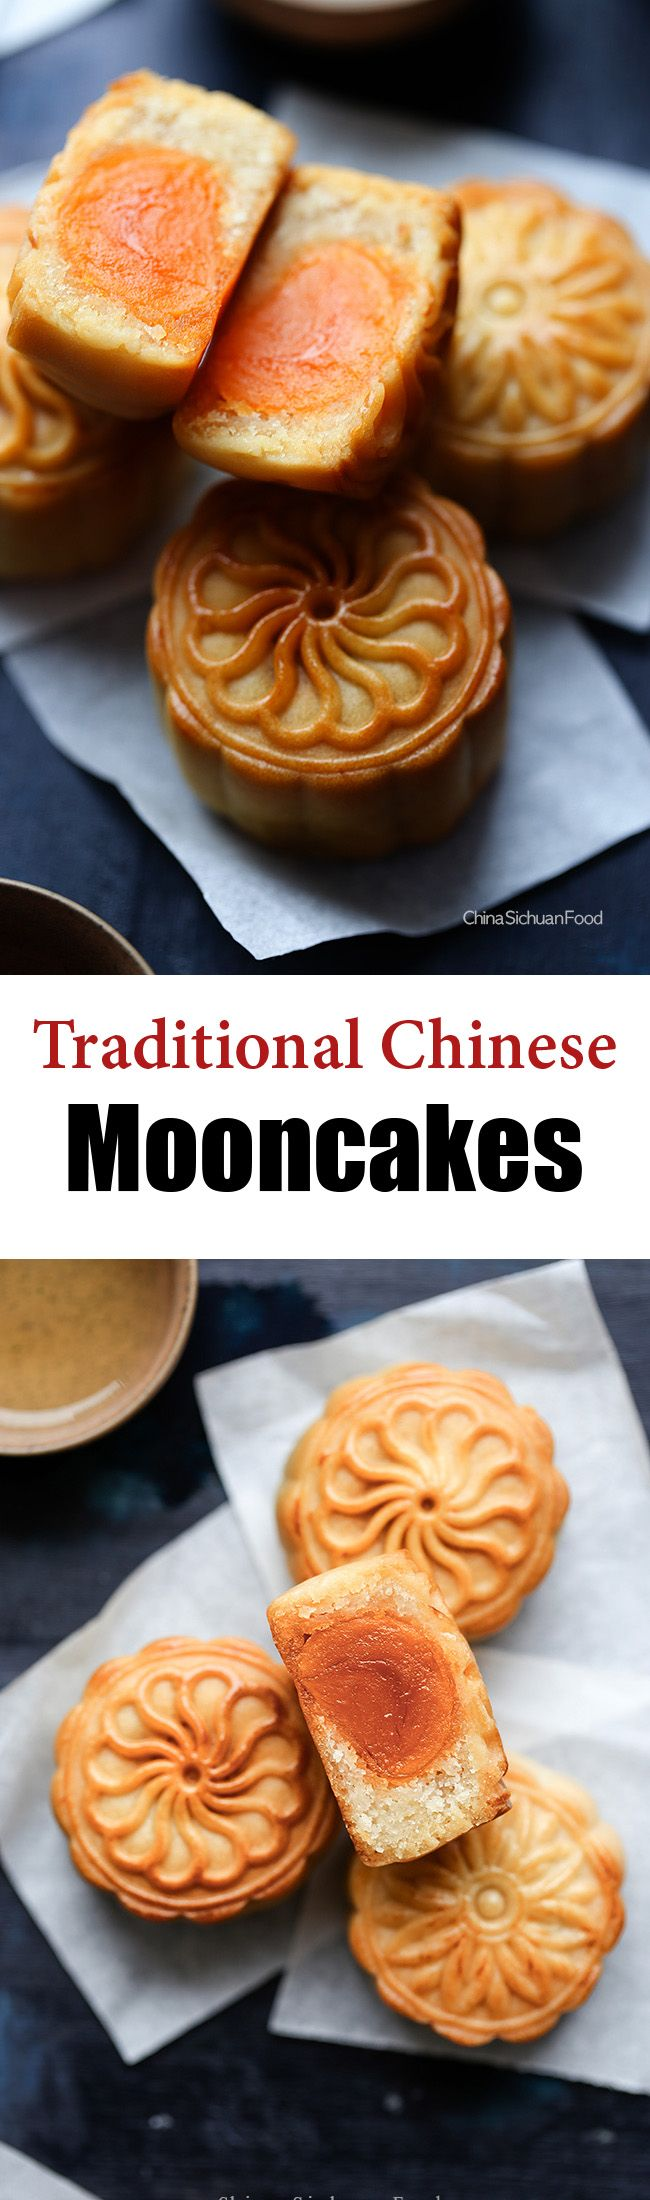 Chinese Mooncake (Yue Bing)月饼—Traditional Version,Chinese Mid Autumn Day. ChinaSichuanFood.com